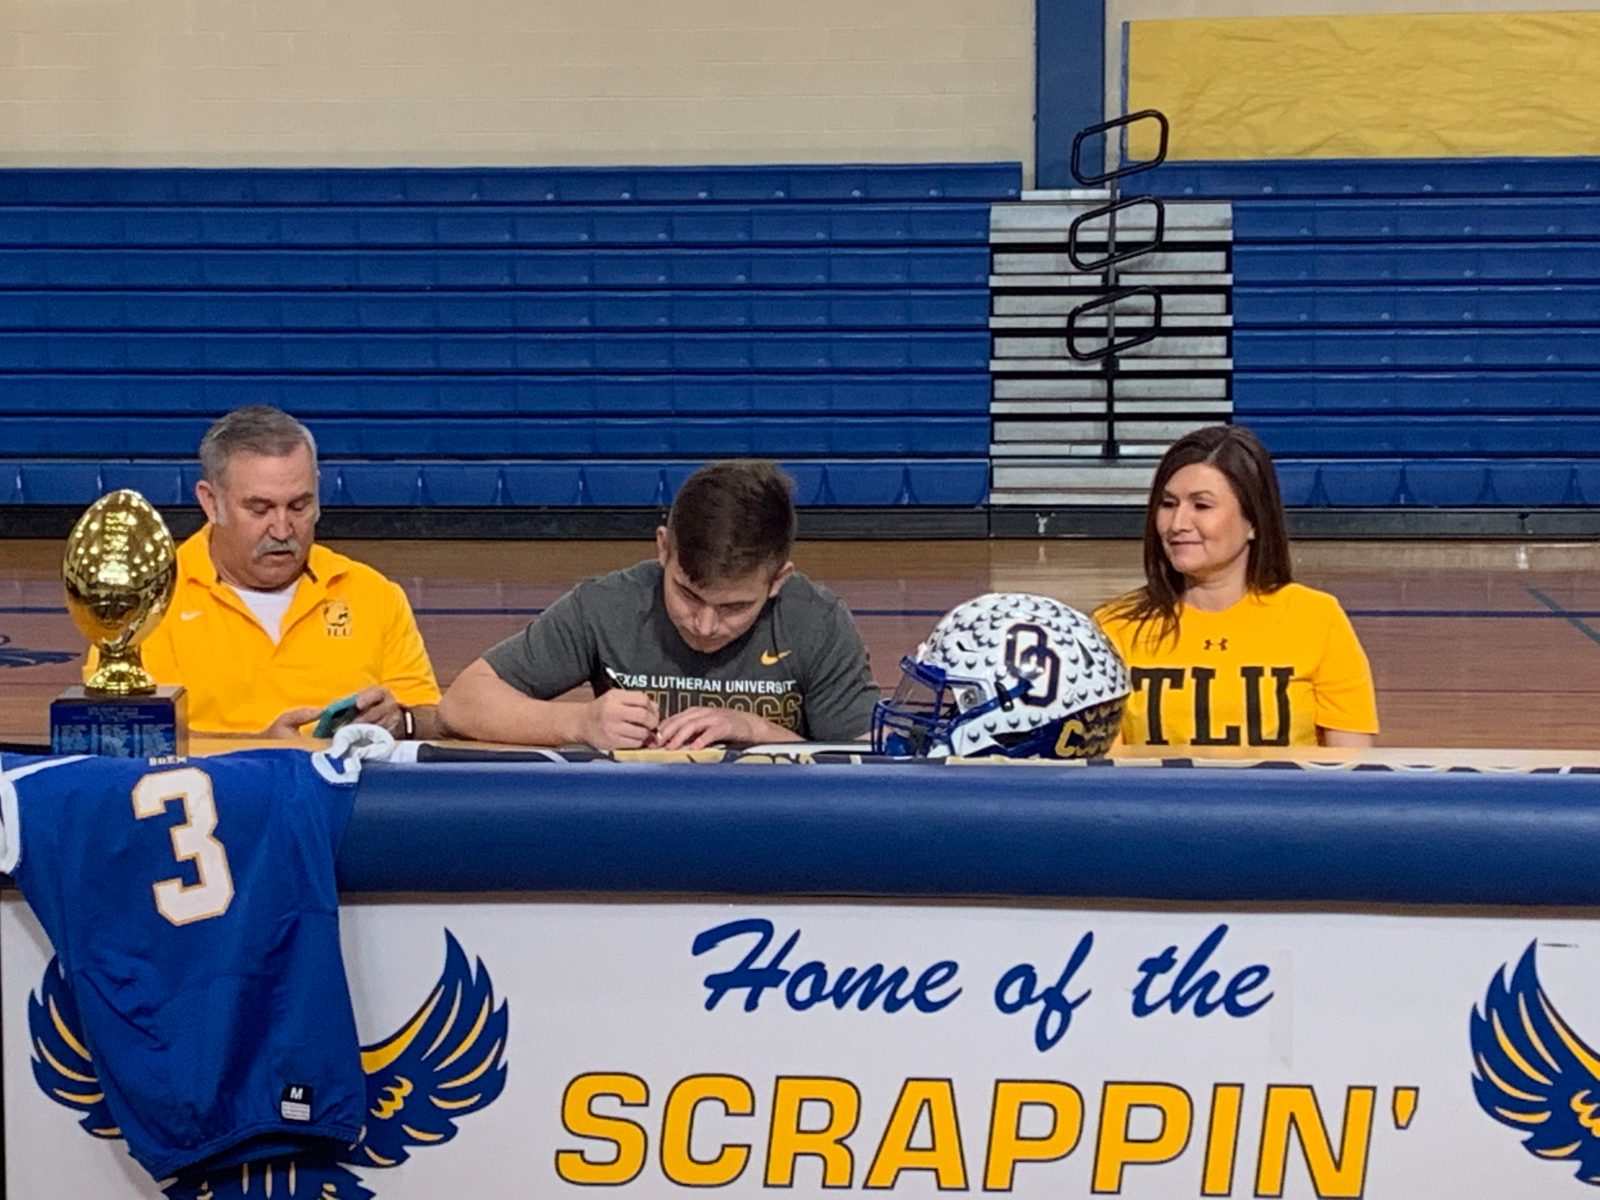 River Sorrells Signs With Texas Lutheran University